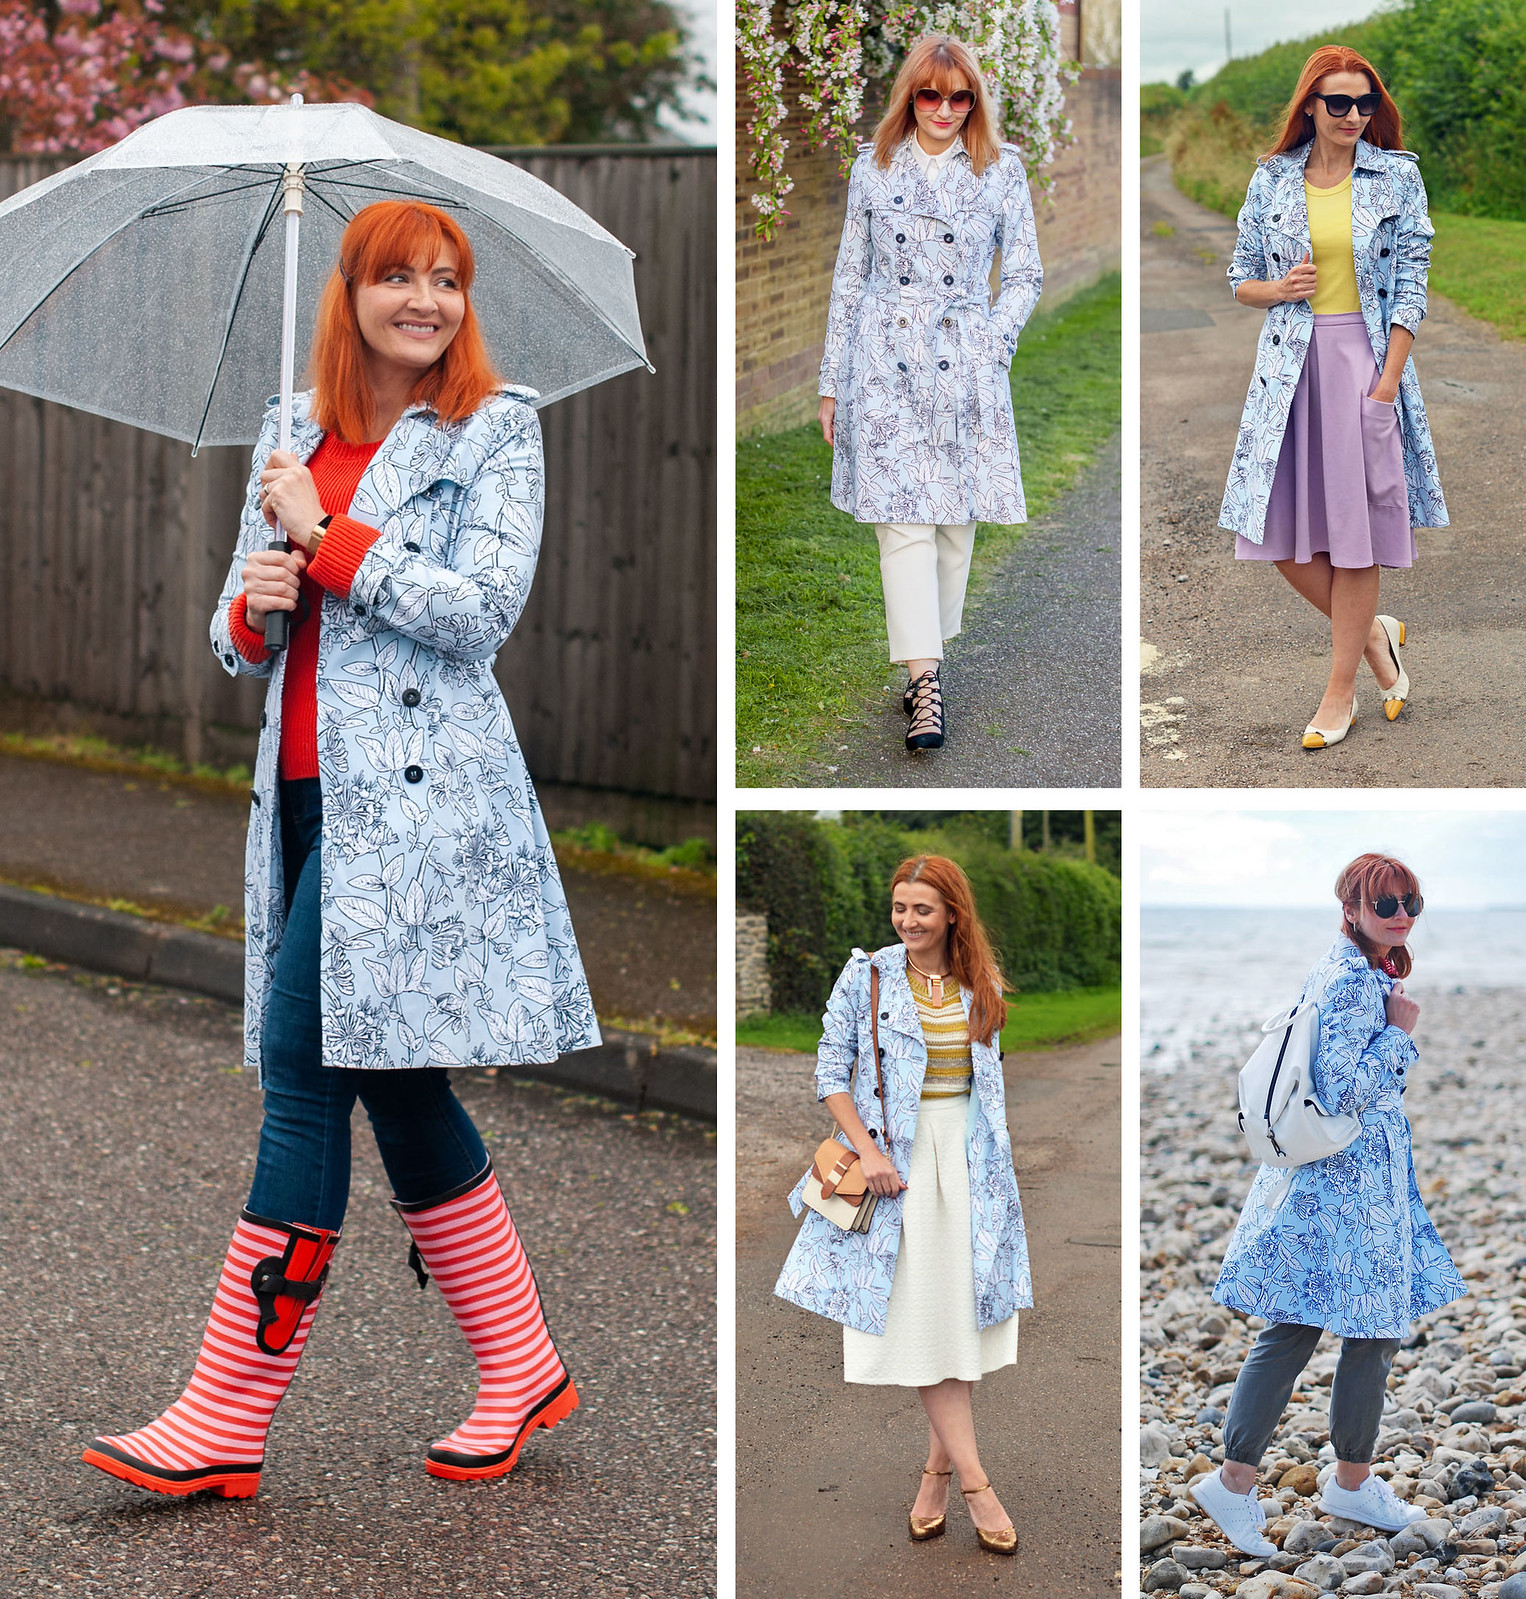 5 Ways to Wear a Blue Floral Raincoat / Patterned Trench Coat | Not Dressed As Lamb, Fashion Over 40